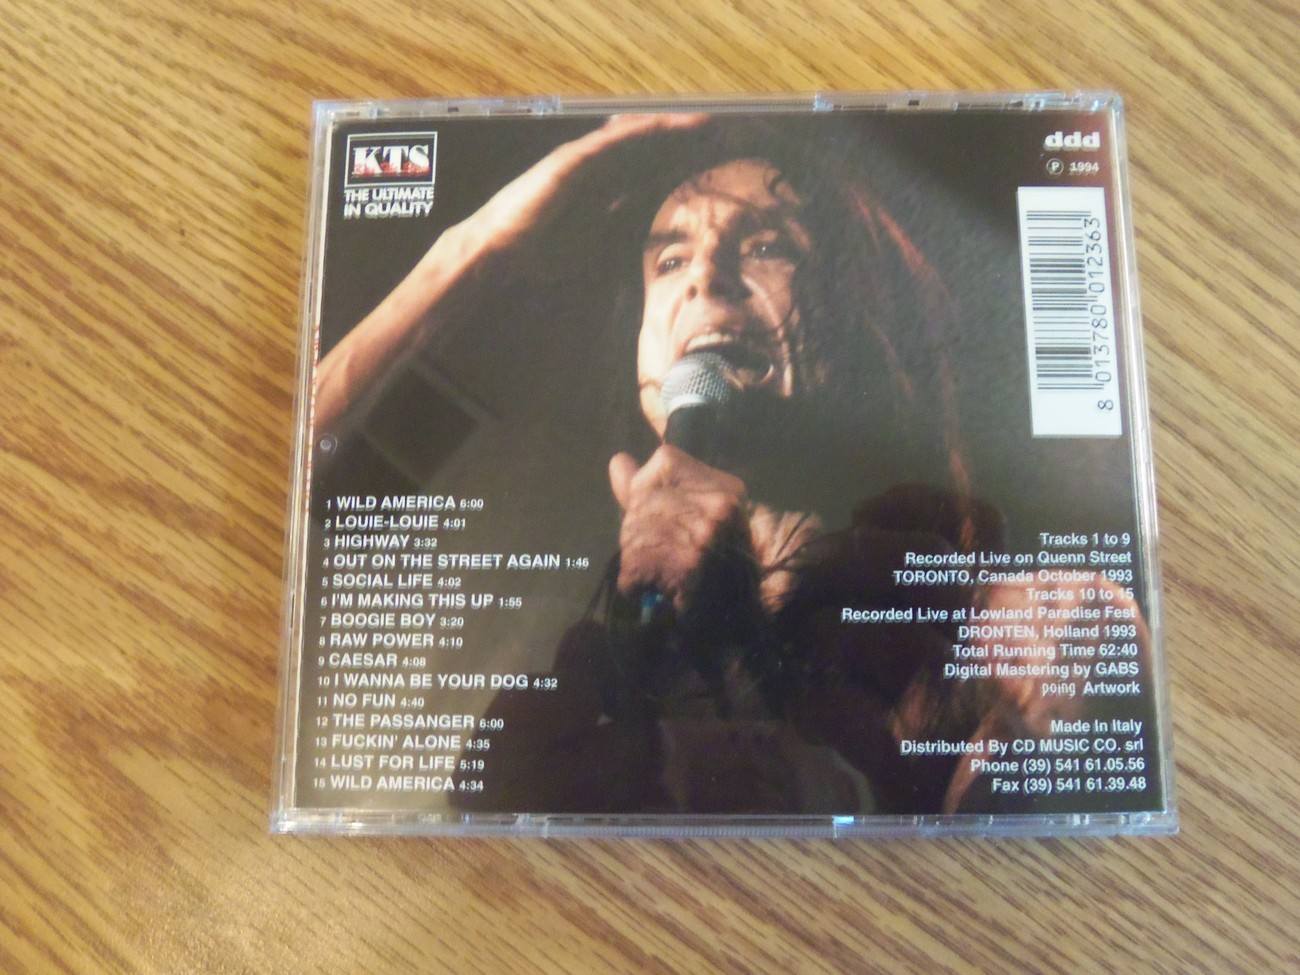 Iggy Pop KTS Out On The Streets Again Live Toronto 1993 Cd